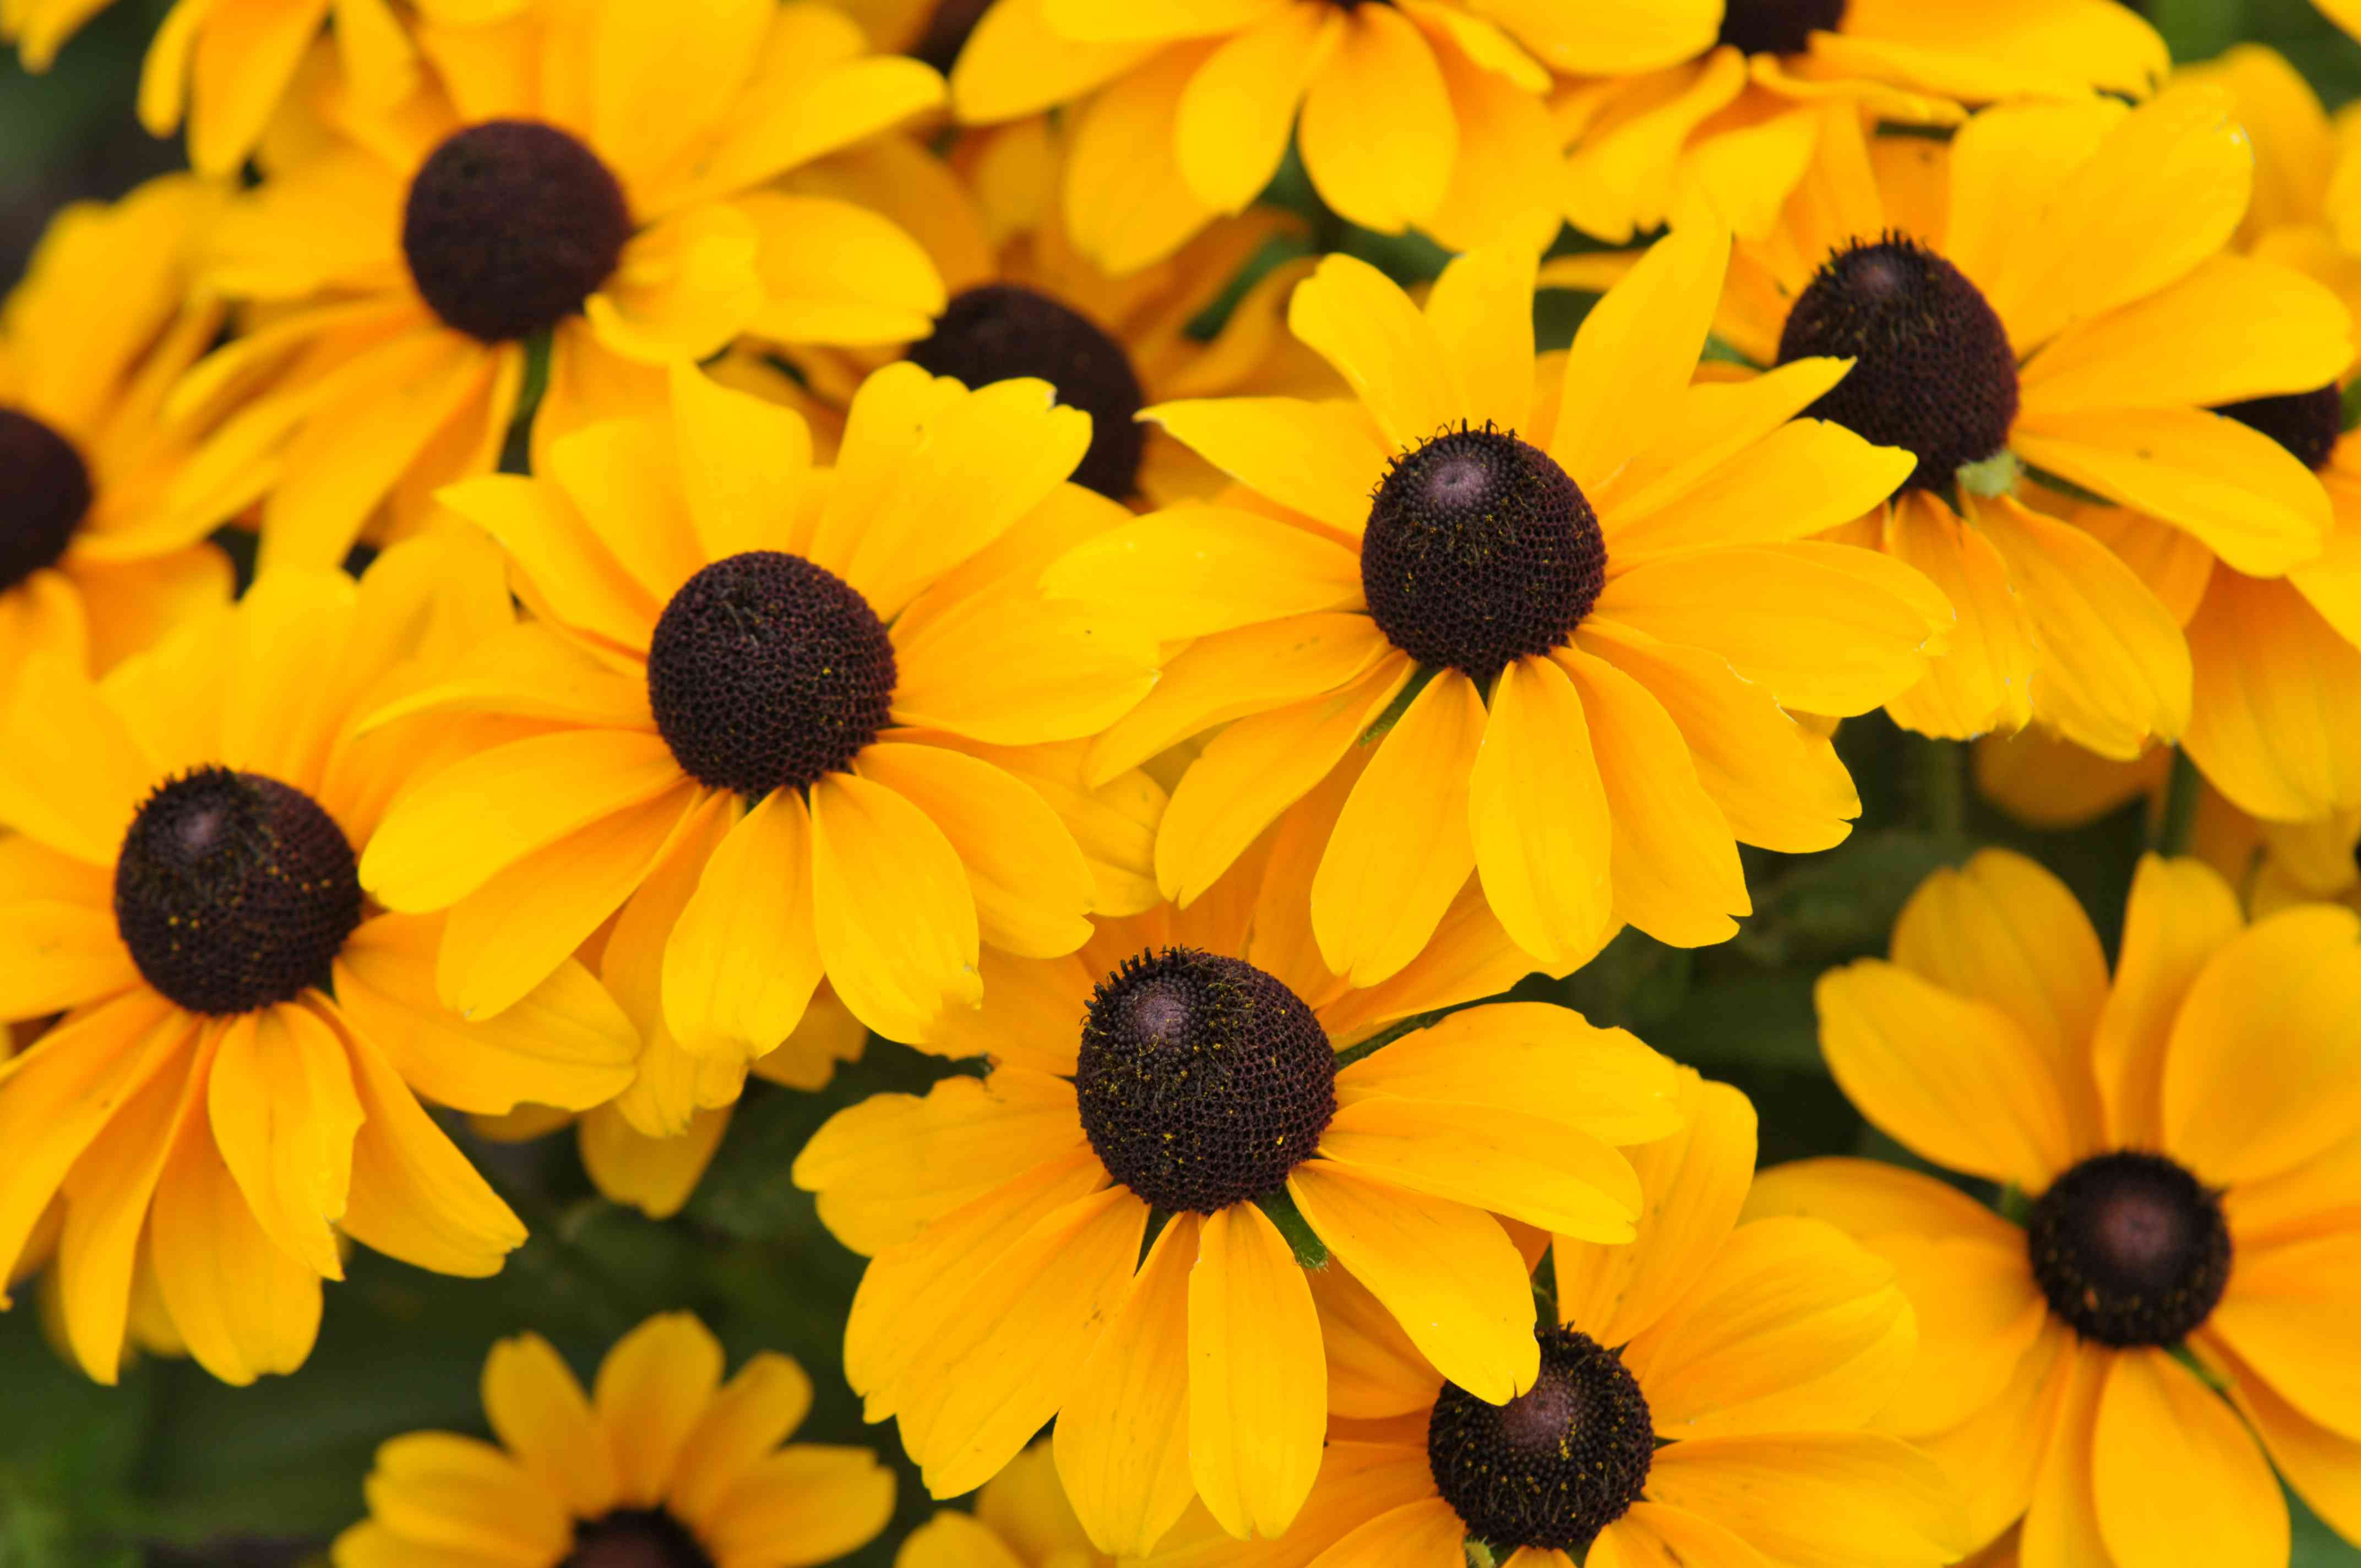 Black-eyed susan flowers with yellow petals and black centers closeup